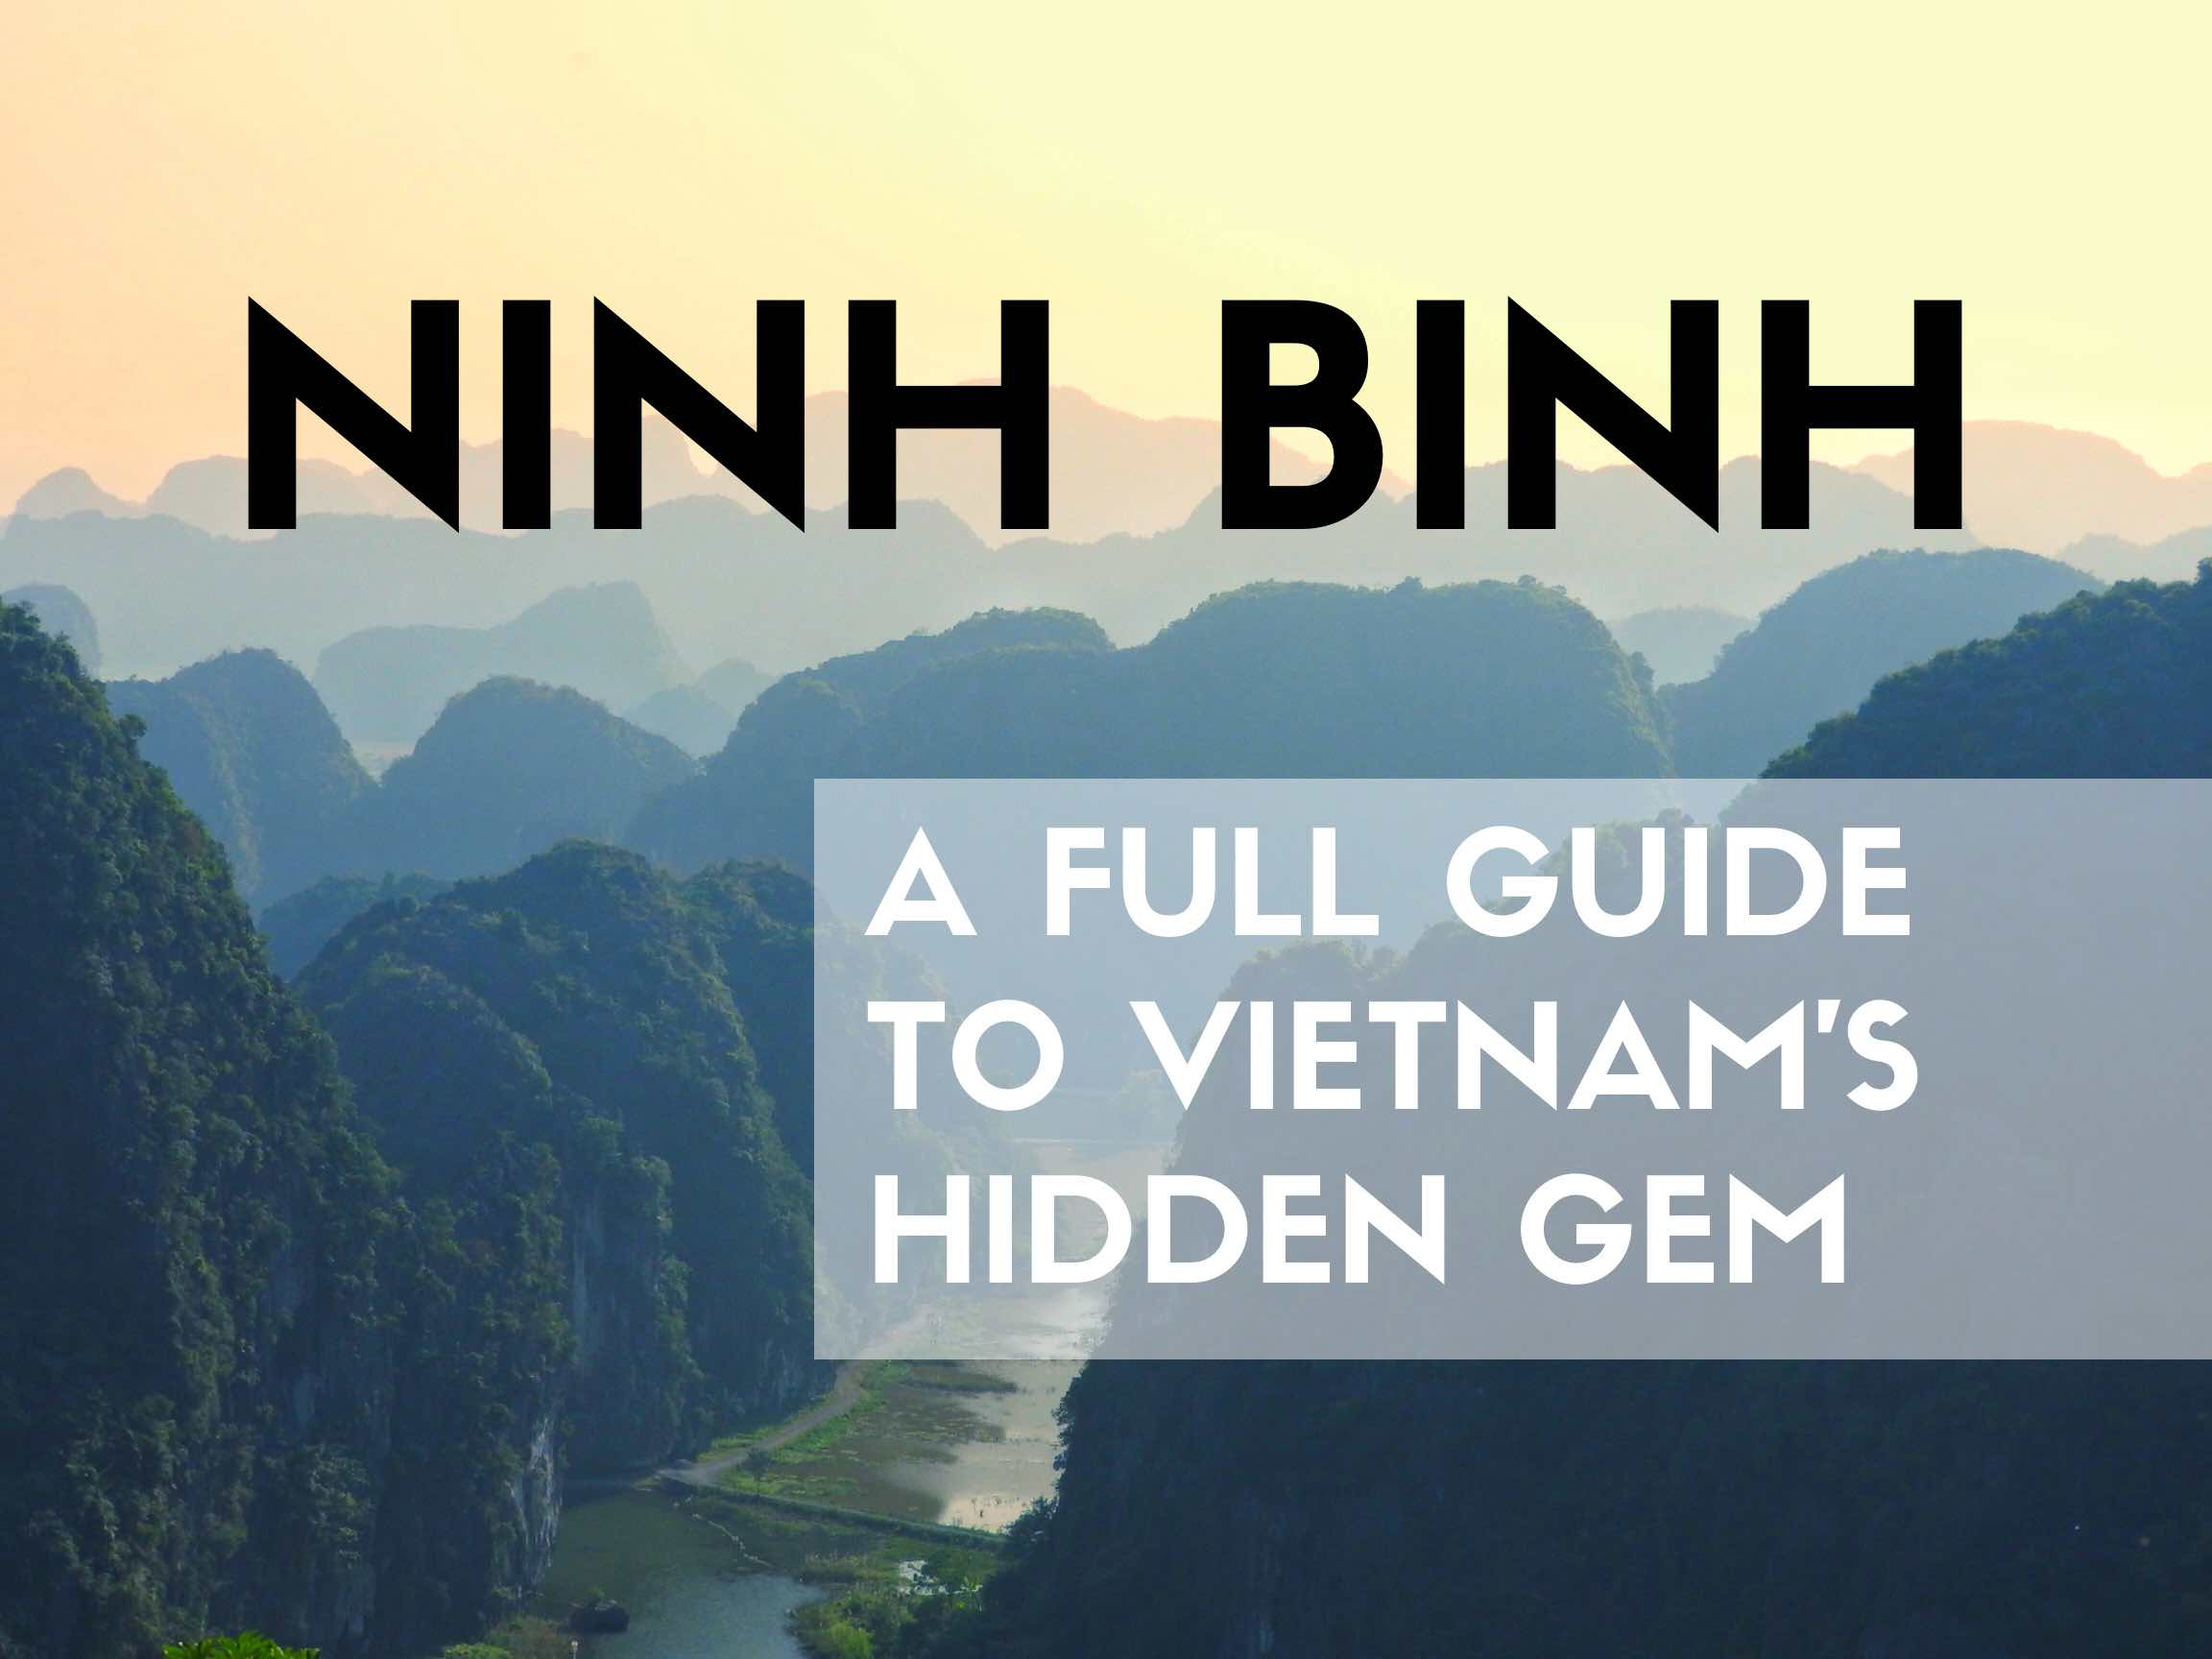 ninh binh itinerary and travel guide